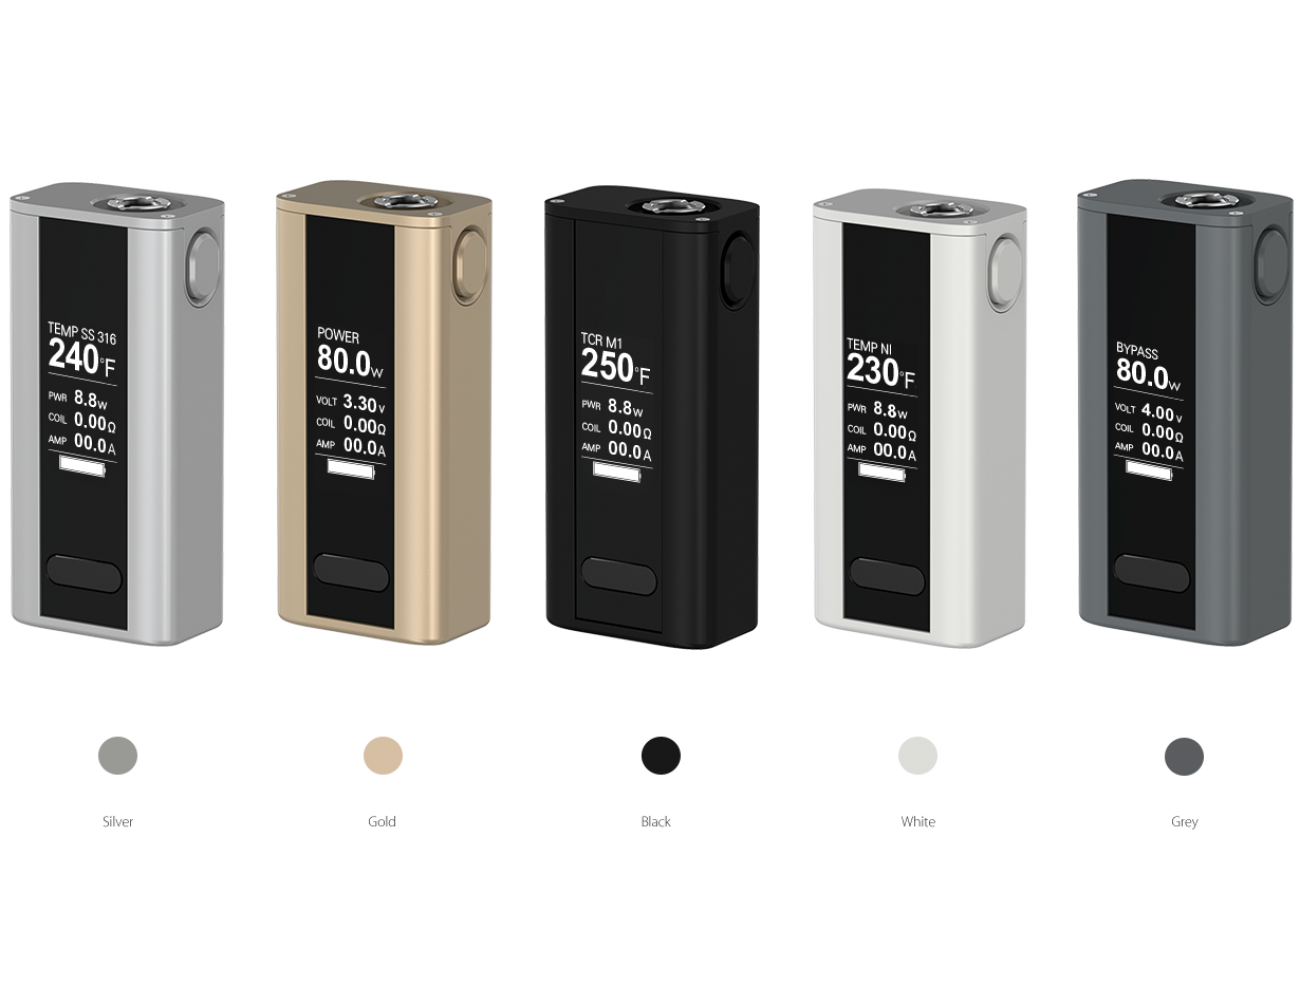 Cuboid Mini 80 W Battery Kit Joyetech